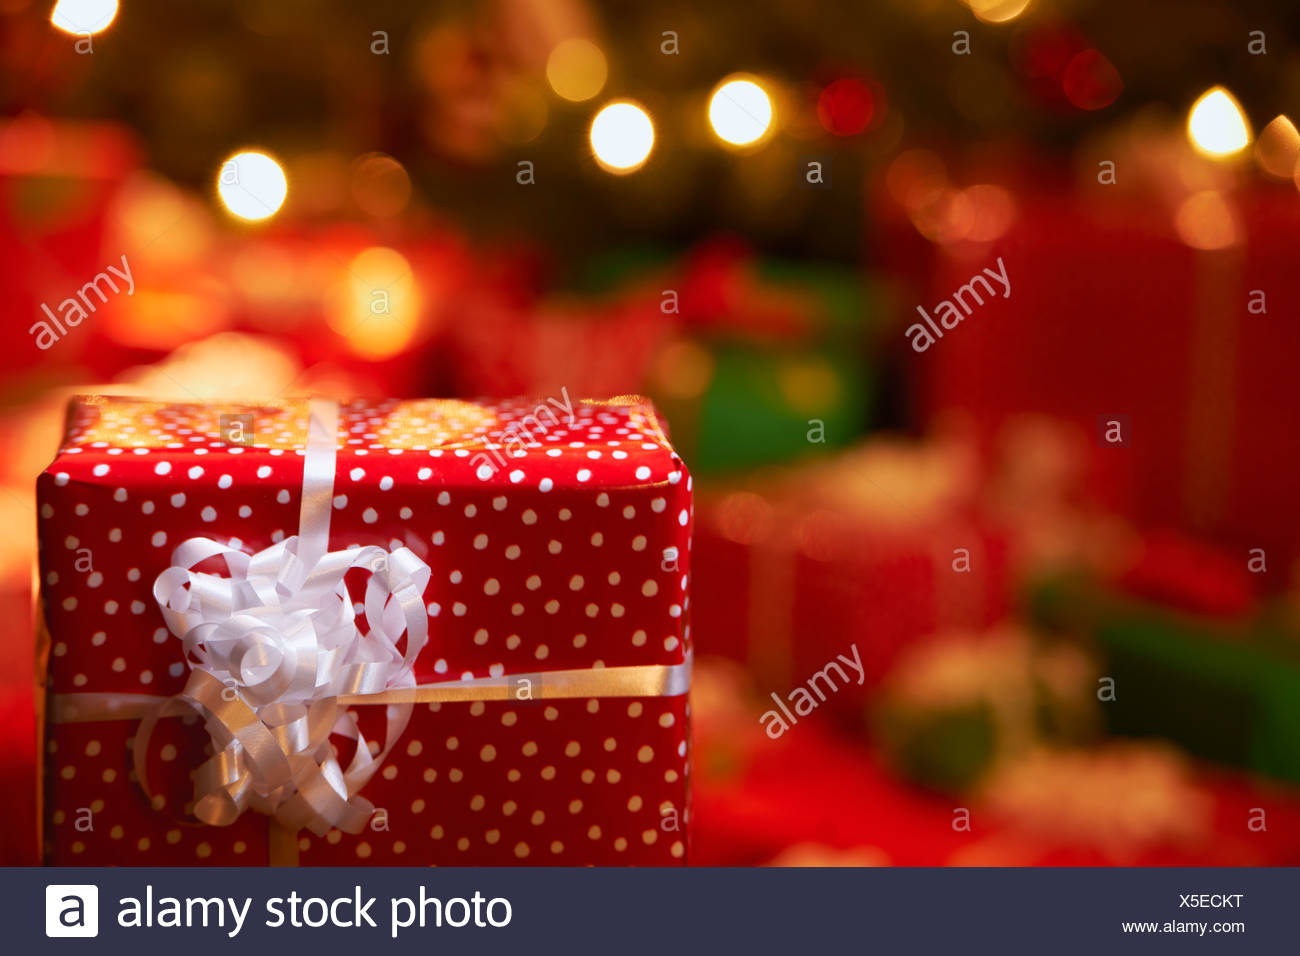 Close up of wrapped Christmas gift - Stock Image